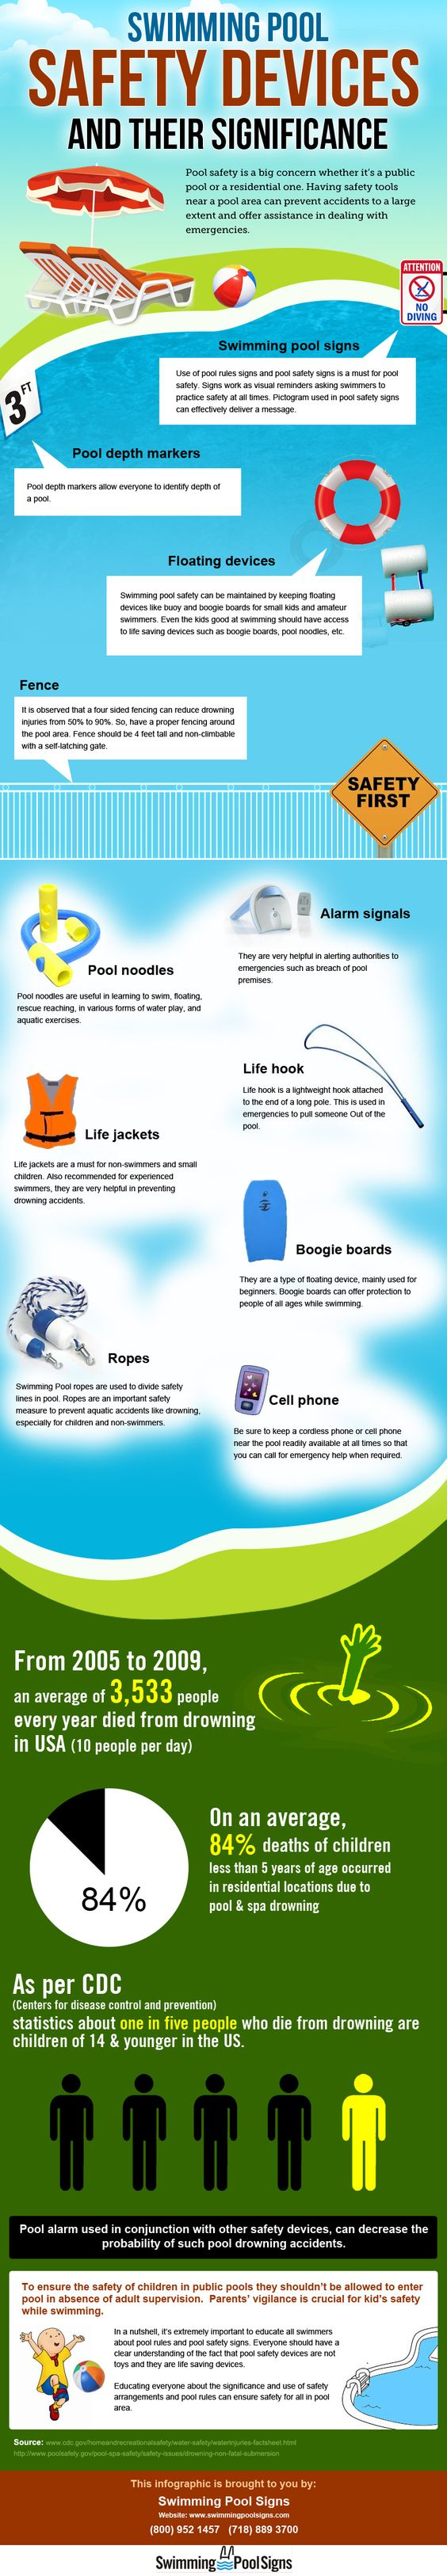 Swimming Pool Safety Devices And Their Significance